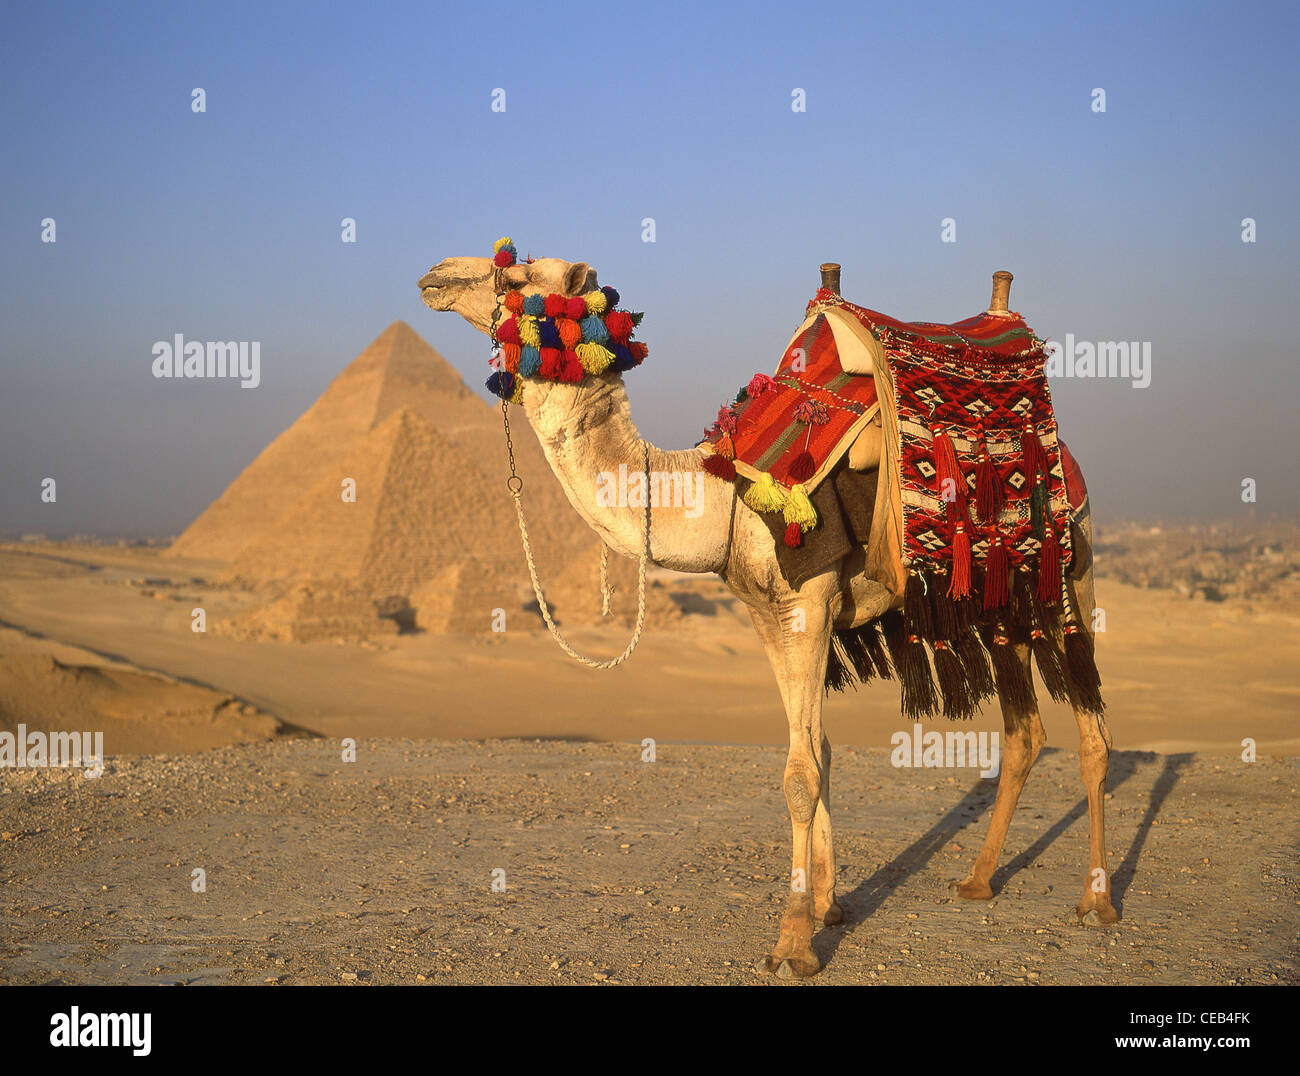 Decorated camel and The Great Pyramids of Giza, Giza, Giza Governate, Republic of Egypt - Stock Image